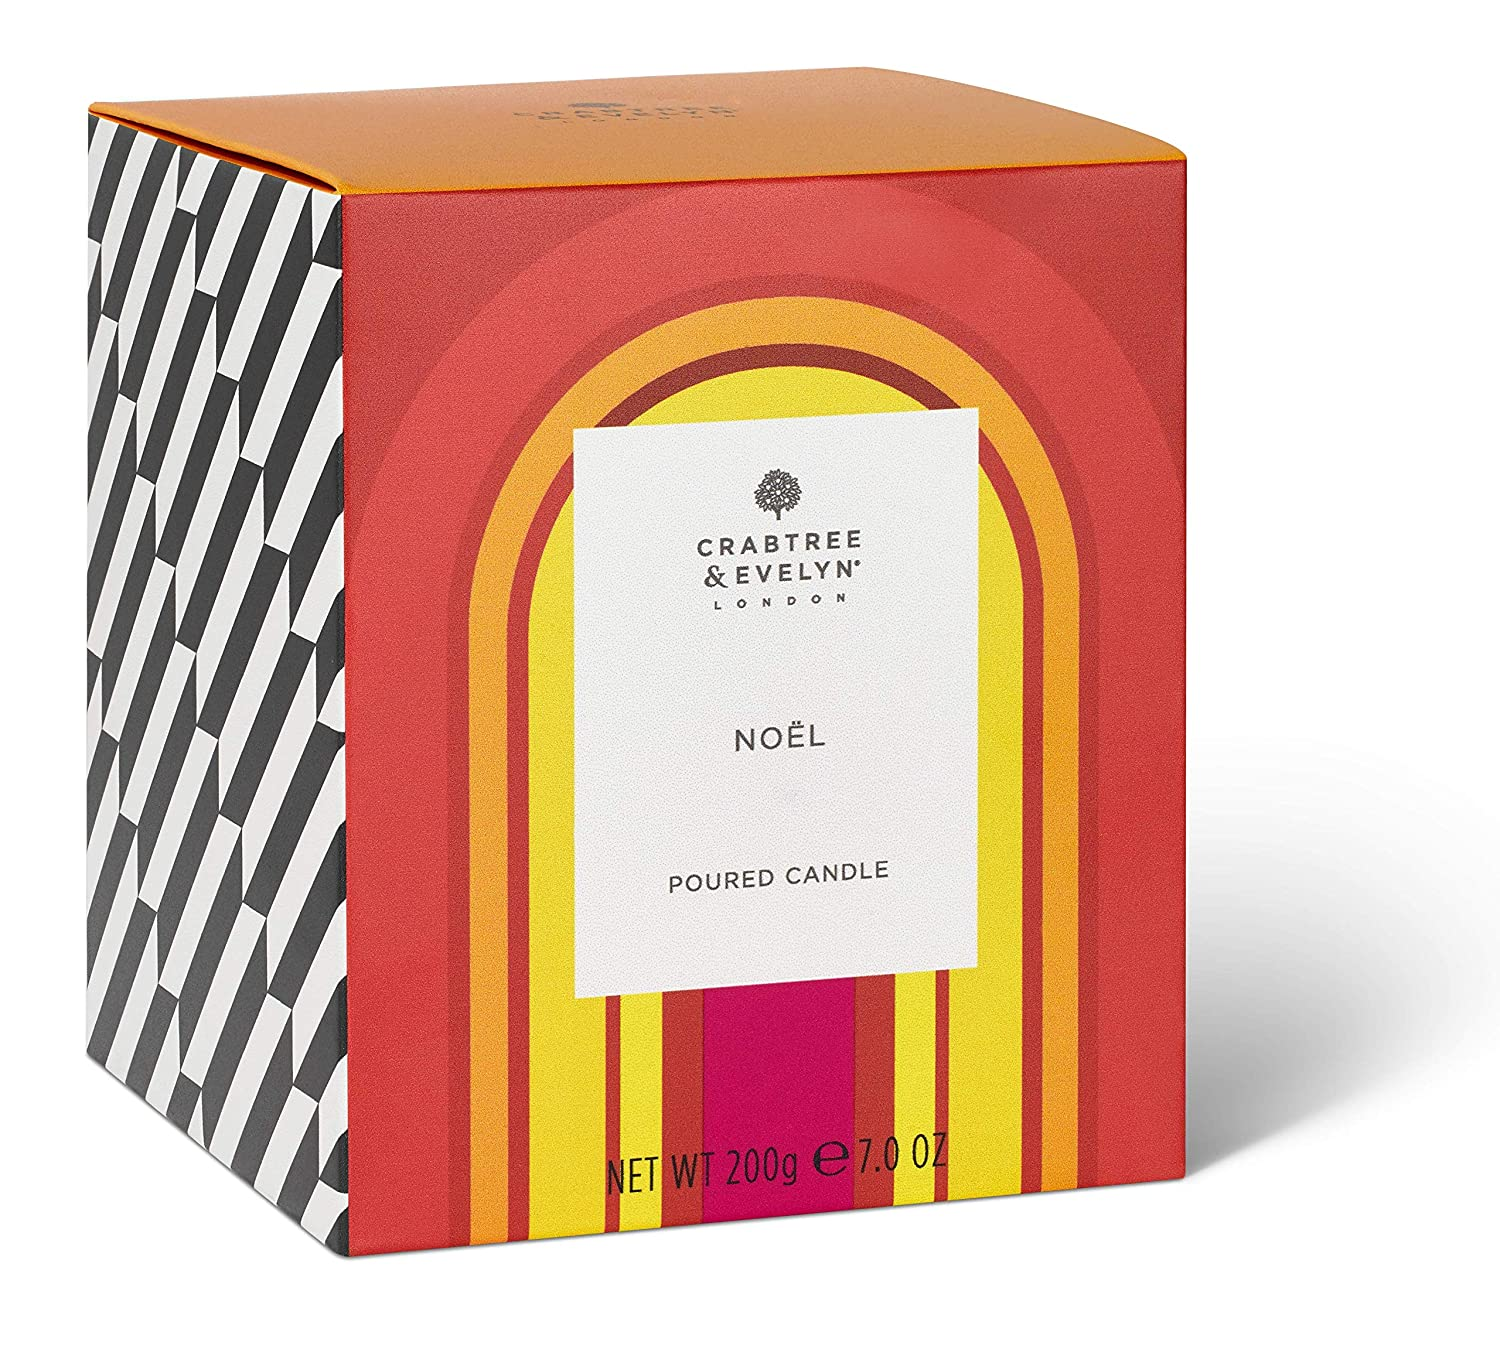 Crabtree & Evelyn Noel Poured Candle with Mulled Spice and Fir Spruce Notes, Large, 200 g 8456